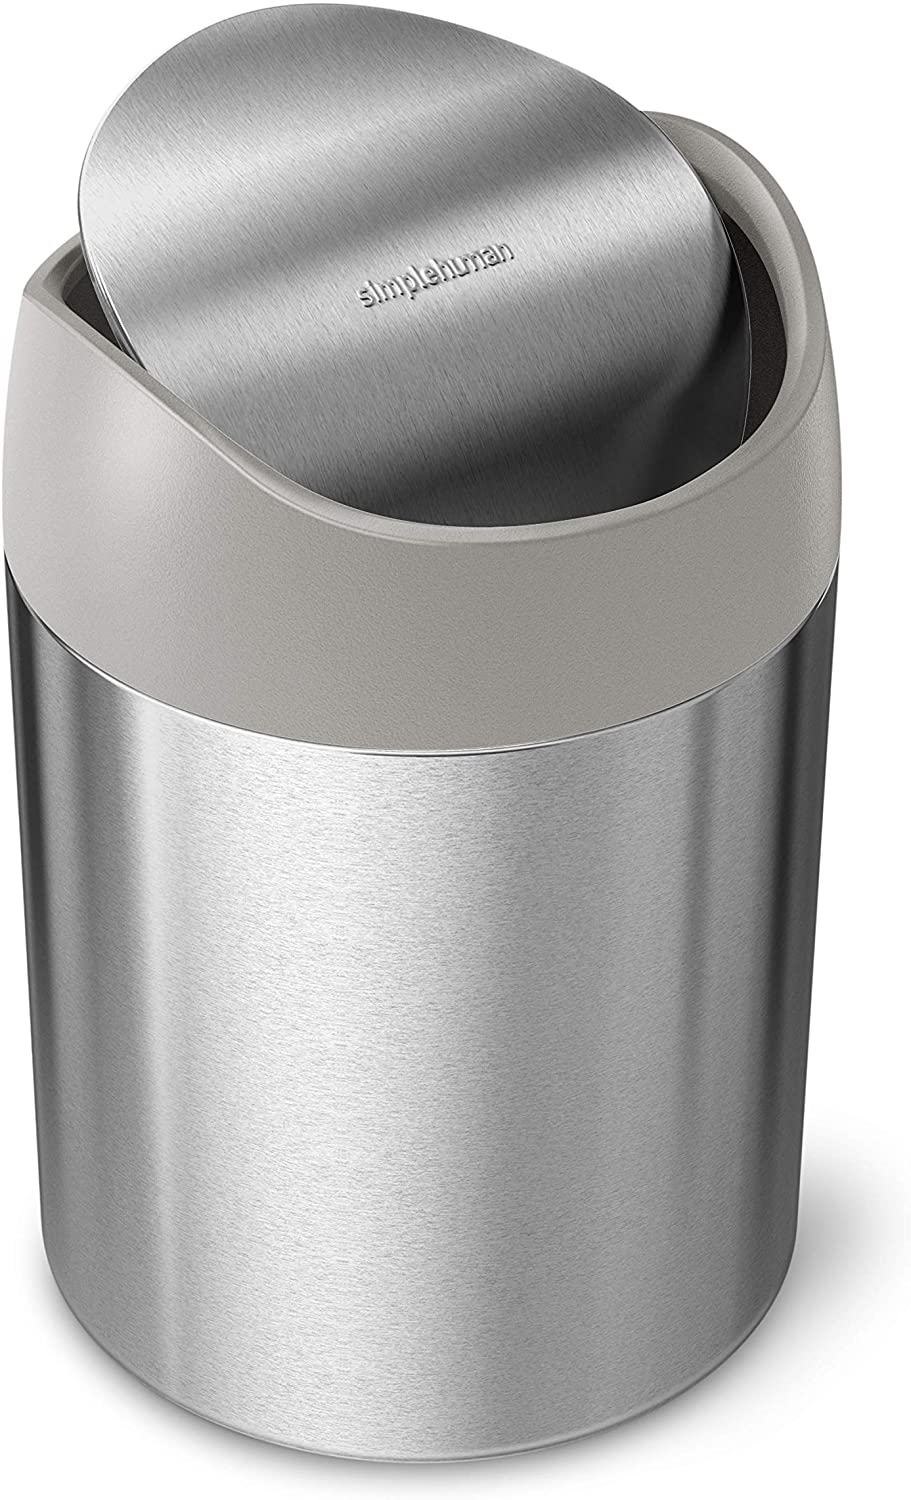 simplehuman, Brushed Stainless Steel 1.5 Liter / 0.4 Gallon Mini Countertop Trash Can